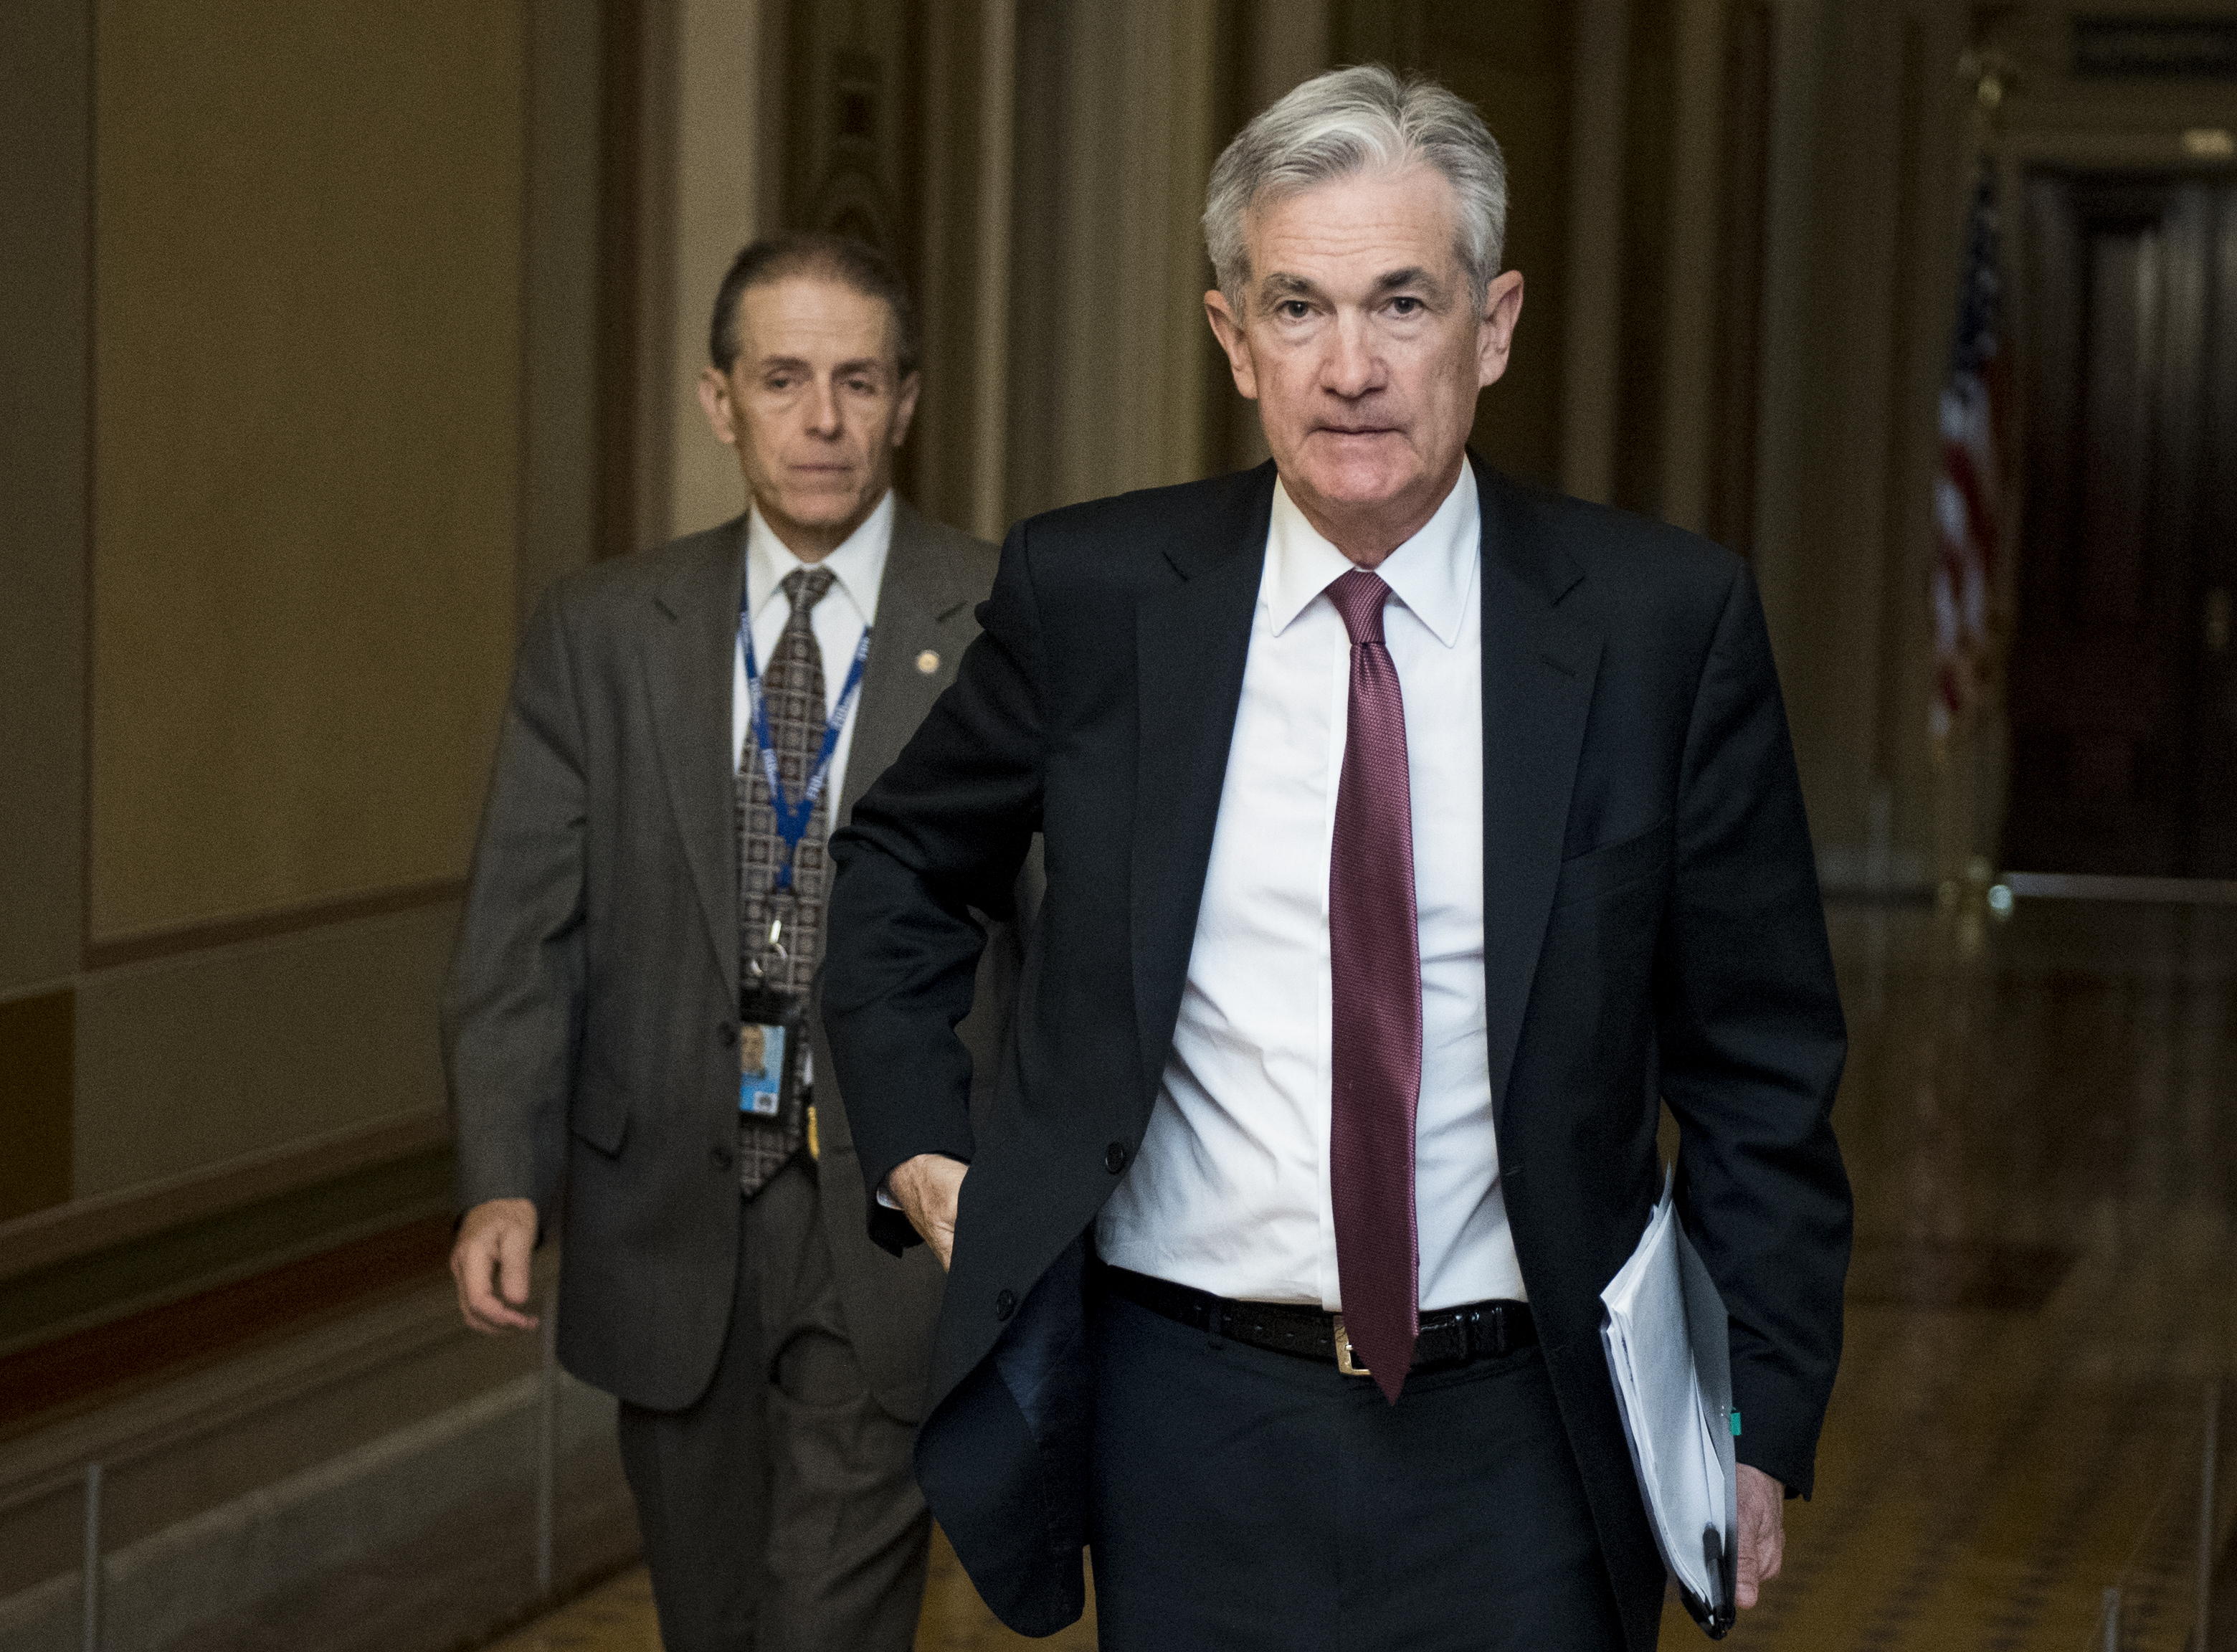 UNITED STATES - JUNE 26: Federal Reserve chairman Jerome Powell leaves the Capitol after meeting with Sen. Jerry Moran, R-Kan., on Wednesday, June 26, 2019. (Photo By Bill Clark/CQ Roll Call)